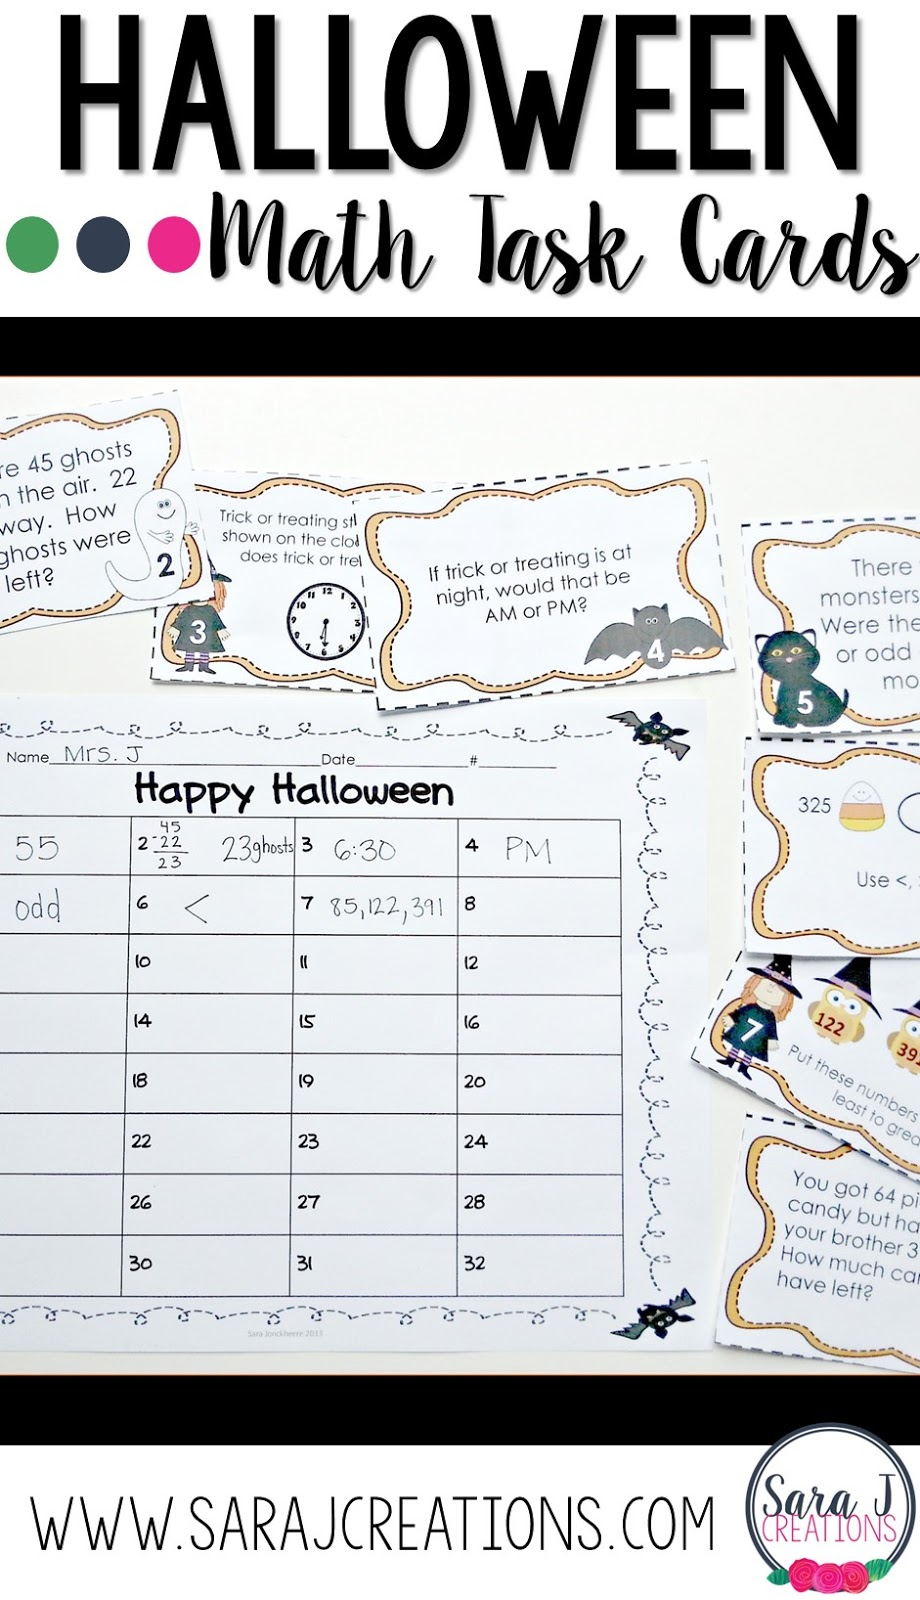 Math Task Cards with a Halloween theme!  Perfect for using in the classroom during October.  Great way to review place value, telling time, addition and subtraction and more!